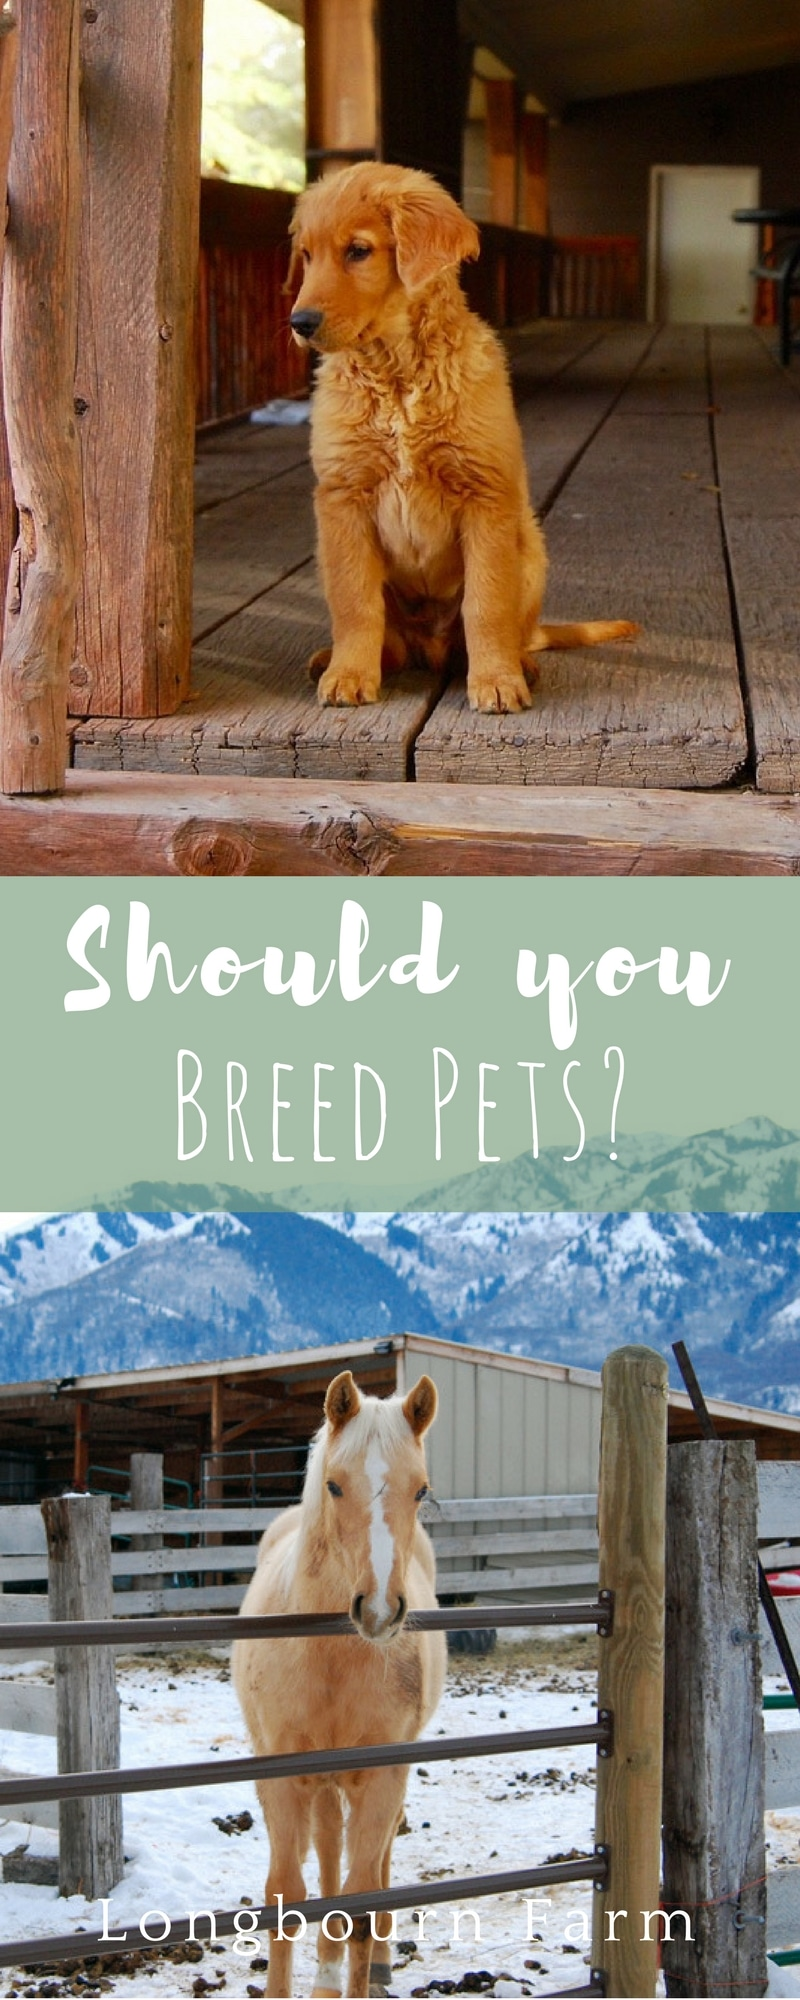 A good starting resource if you are considering breeding pets. Short run-down on genetics and the important things you should consider to be a good breeder. via @longbournfarm